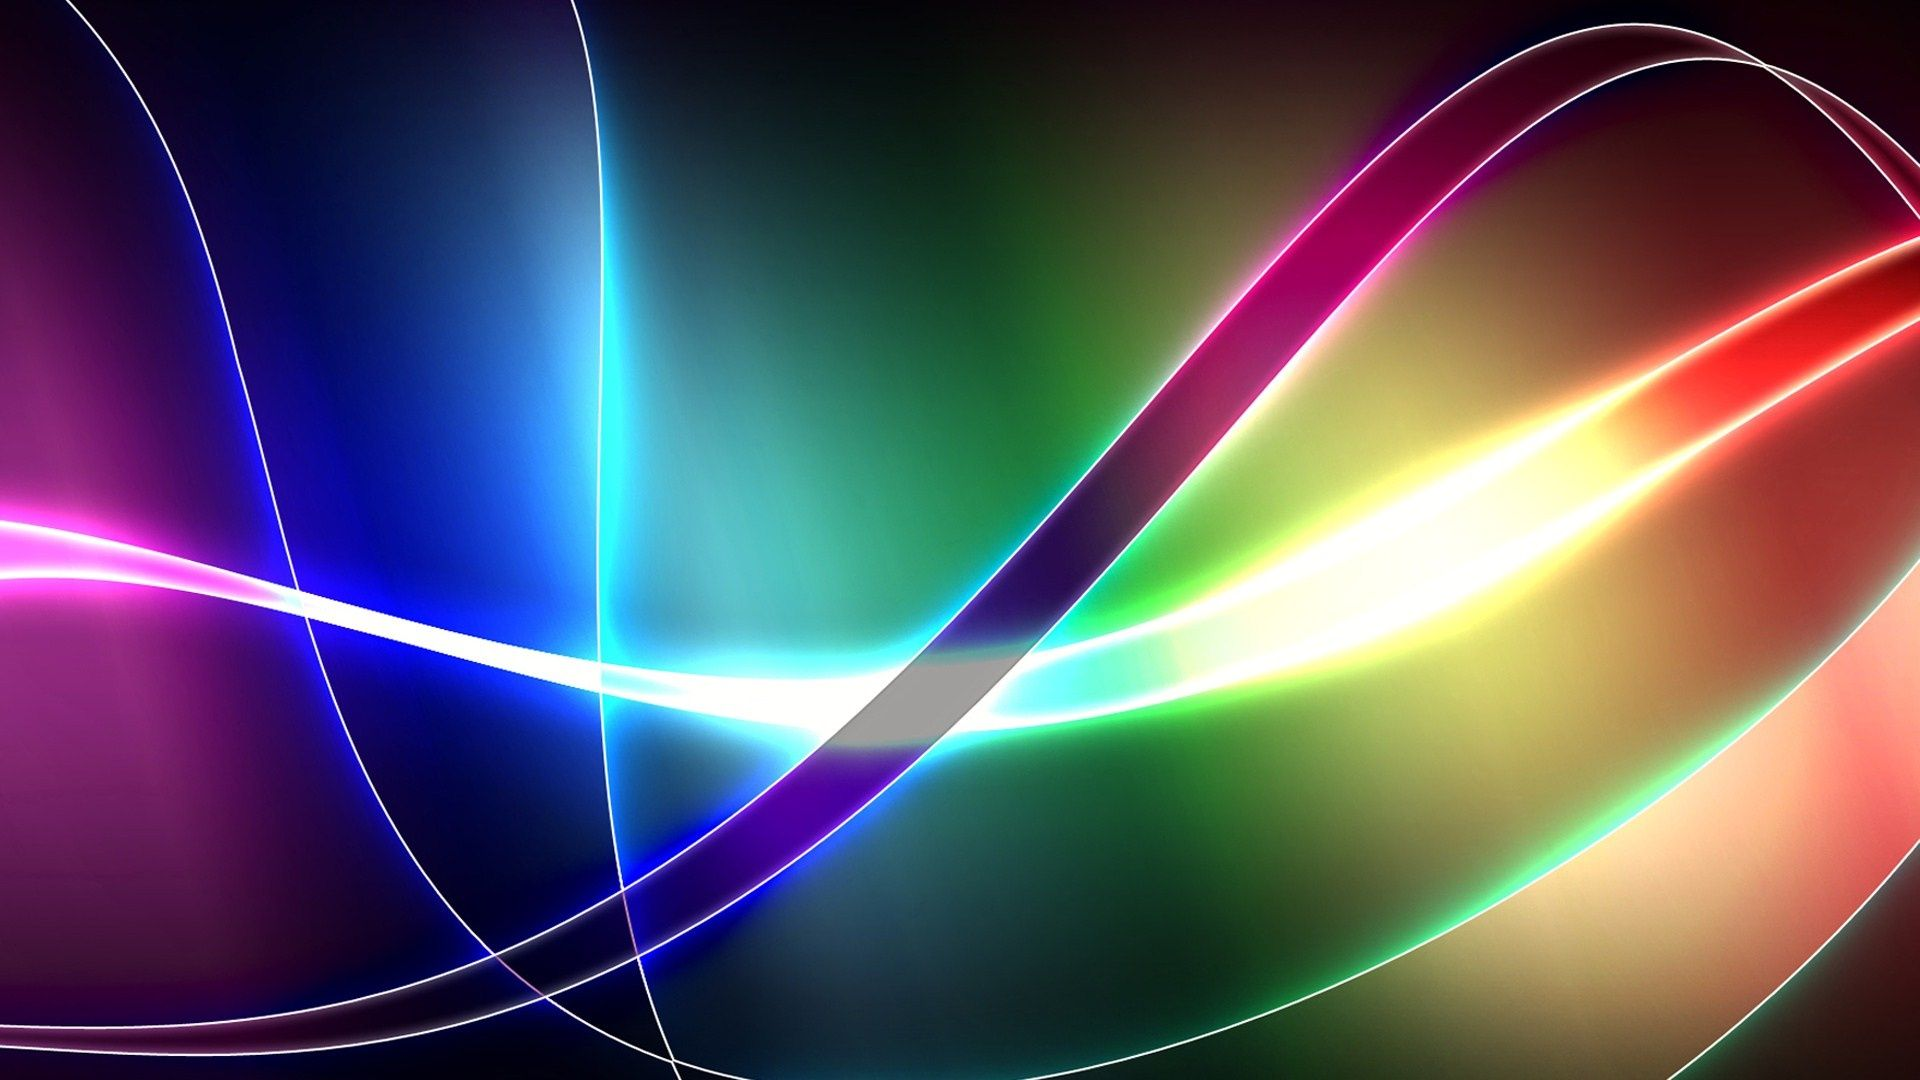 Hdwallpaperpics Resources And Information This Website Is For Sale Rainbow Abstract Cool Backgrounds Wallpapers Colorful Backgrounds